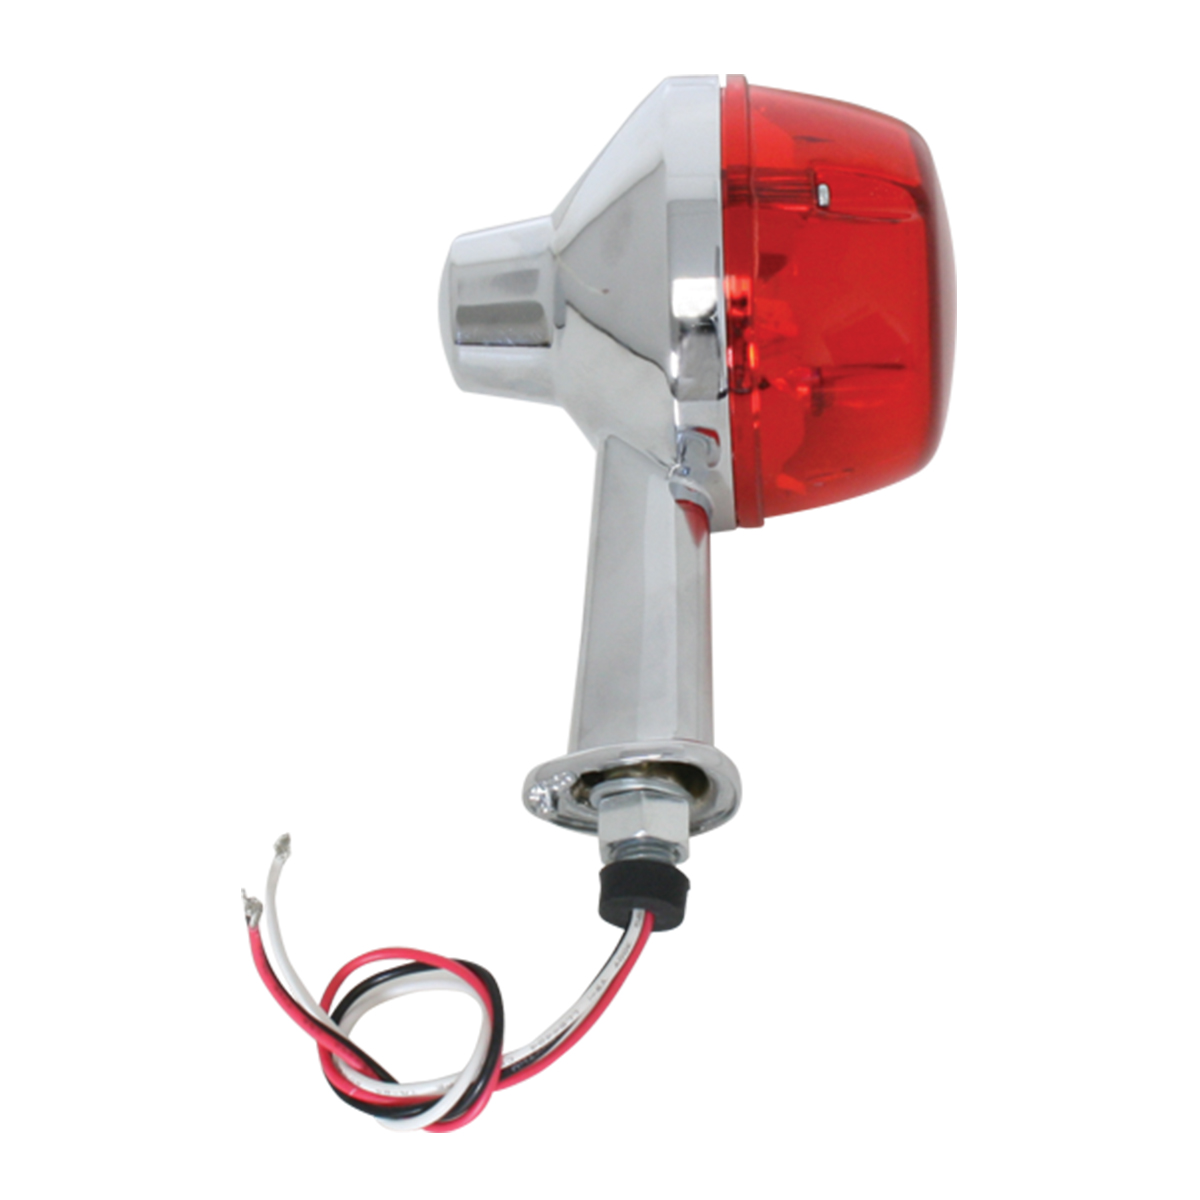 Single Face Honda Spyder LED Pedestal Light in Red/Red